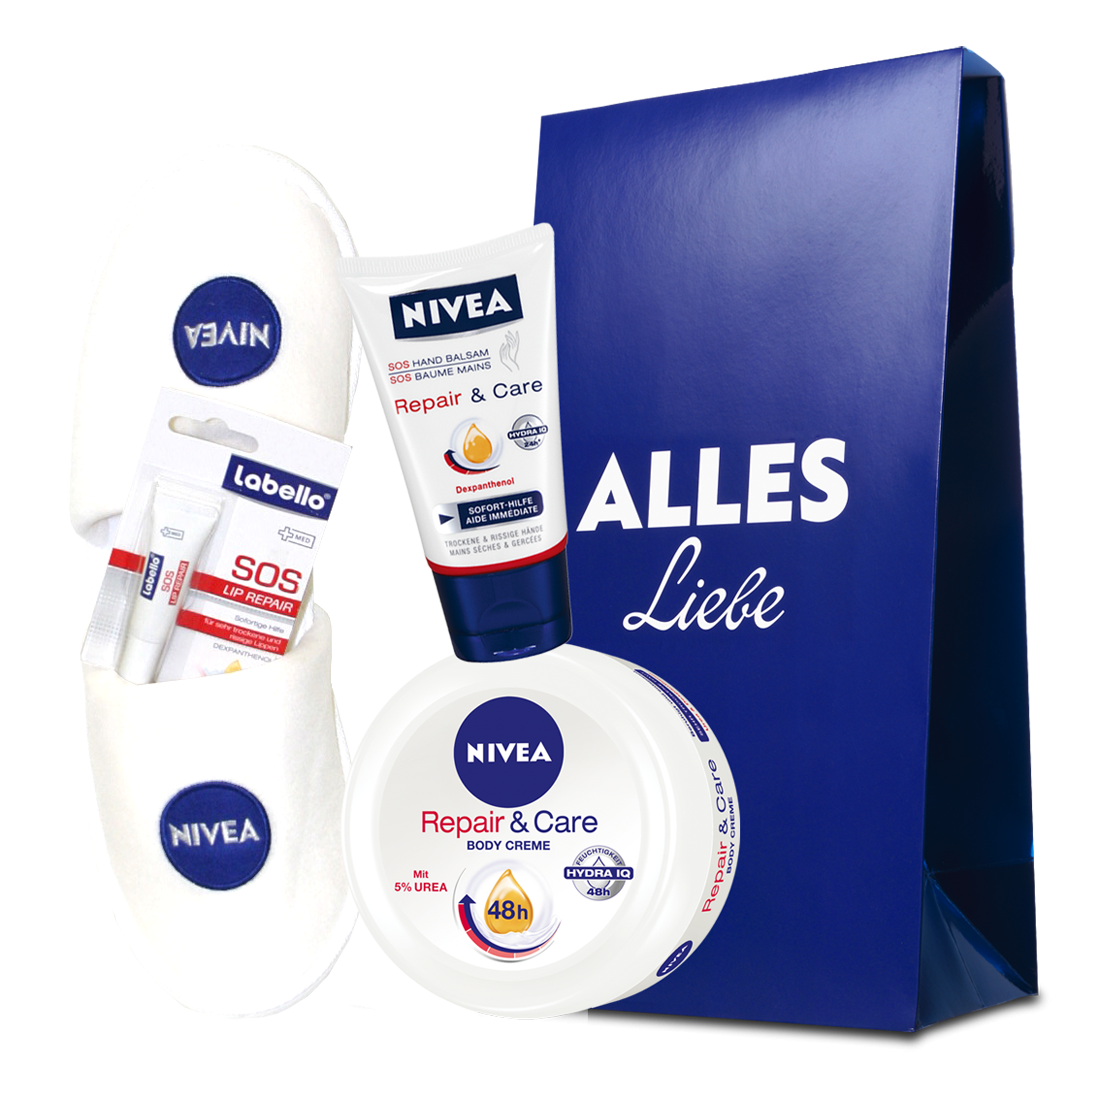 "NIVEA Geschenk-Set ""Repair & Care"" mit SOS Hand Balsam, Body Creme ..."